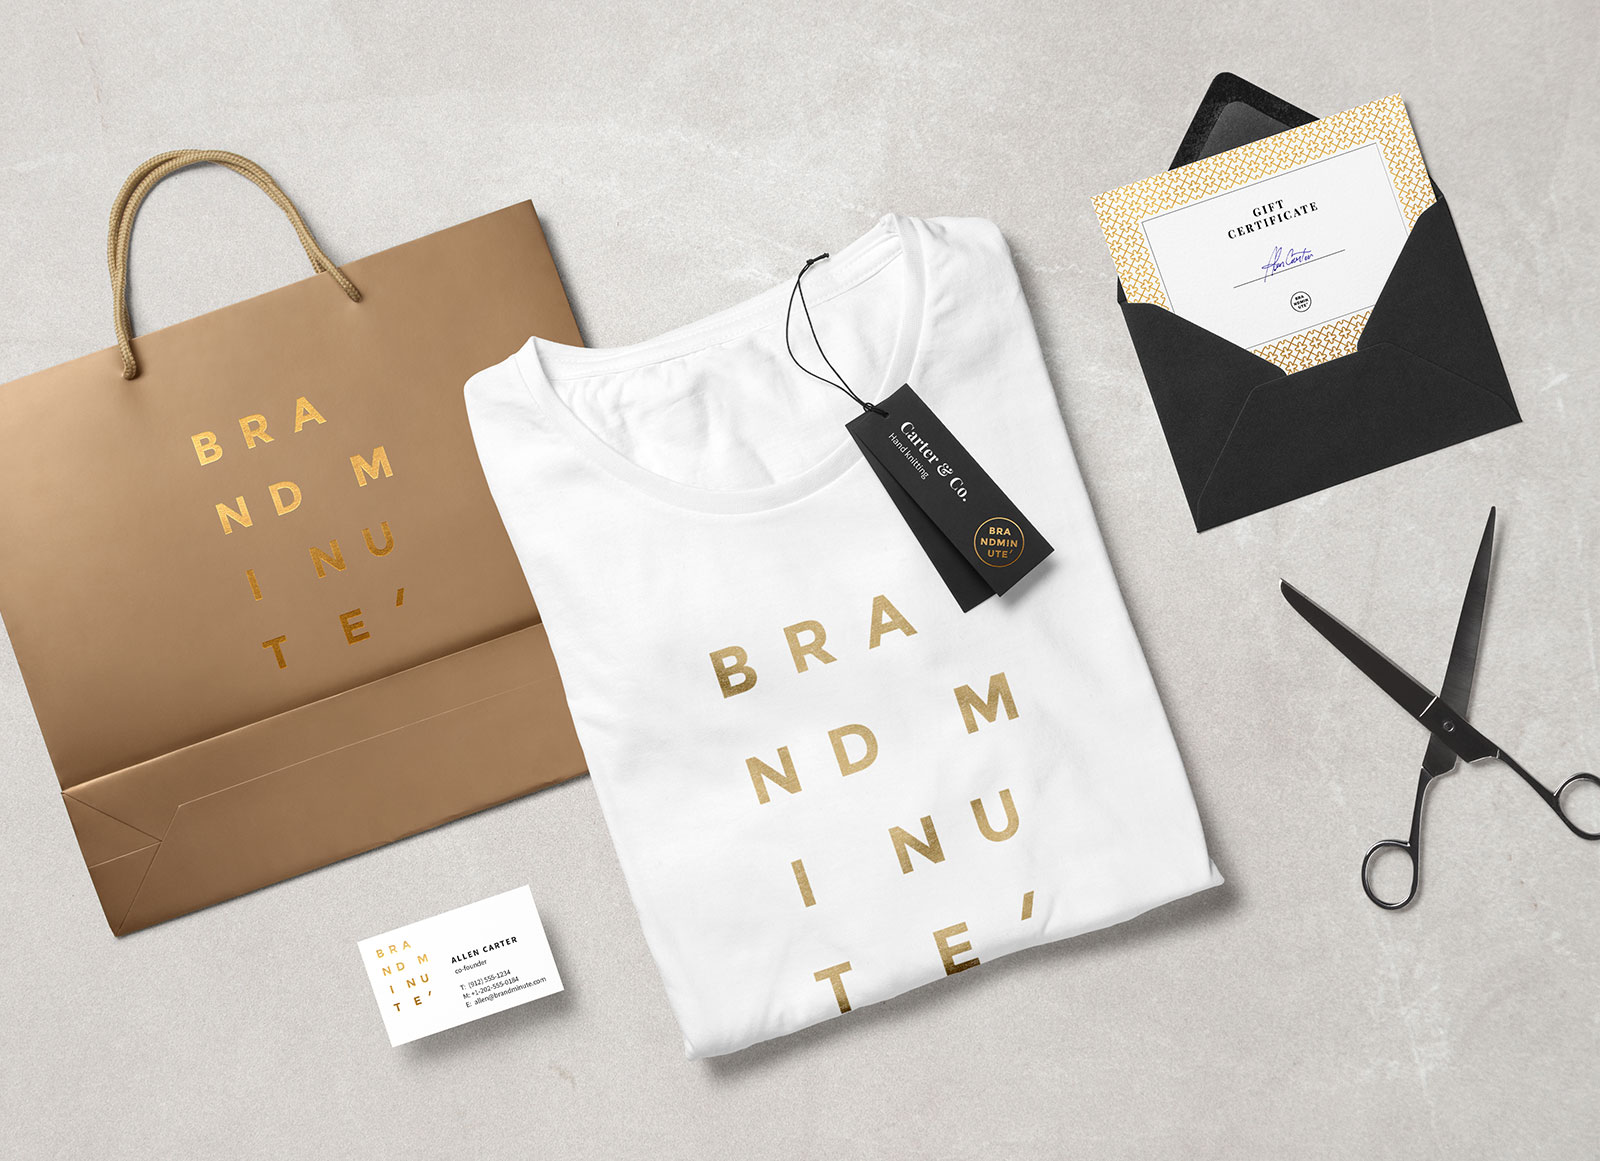 Free Branding Mockup Scene | T-Shirt, Envelop, Business Card ...